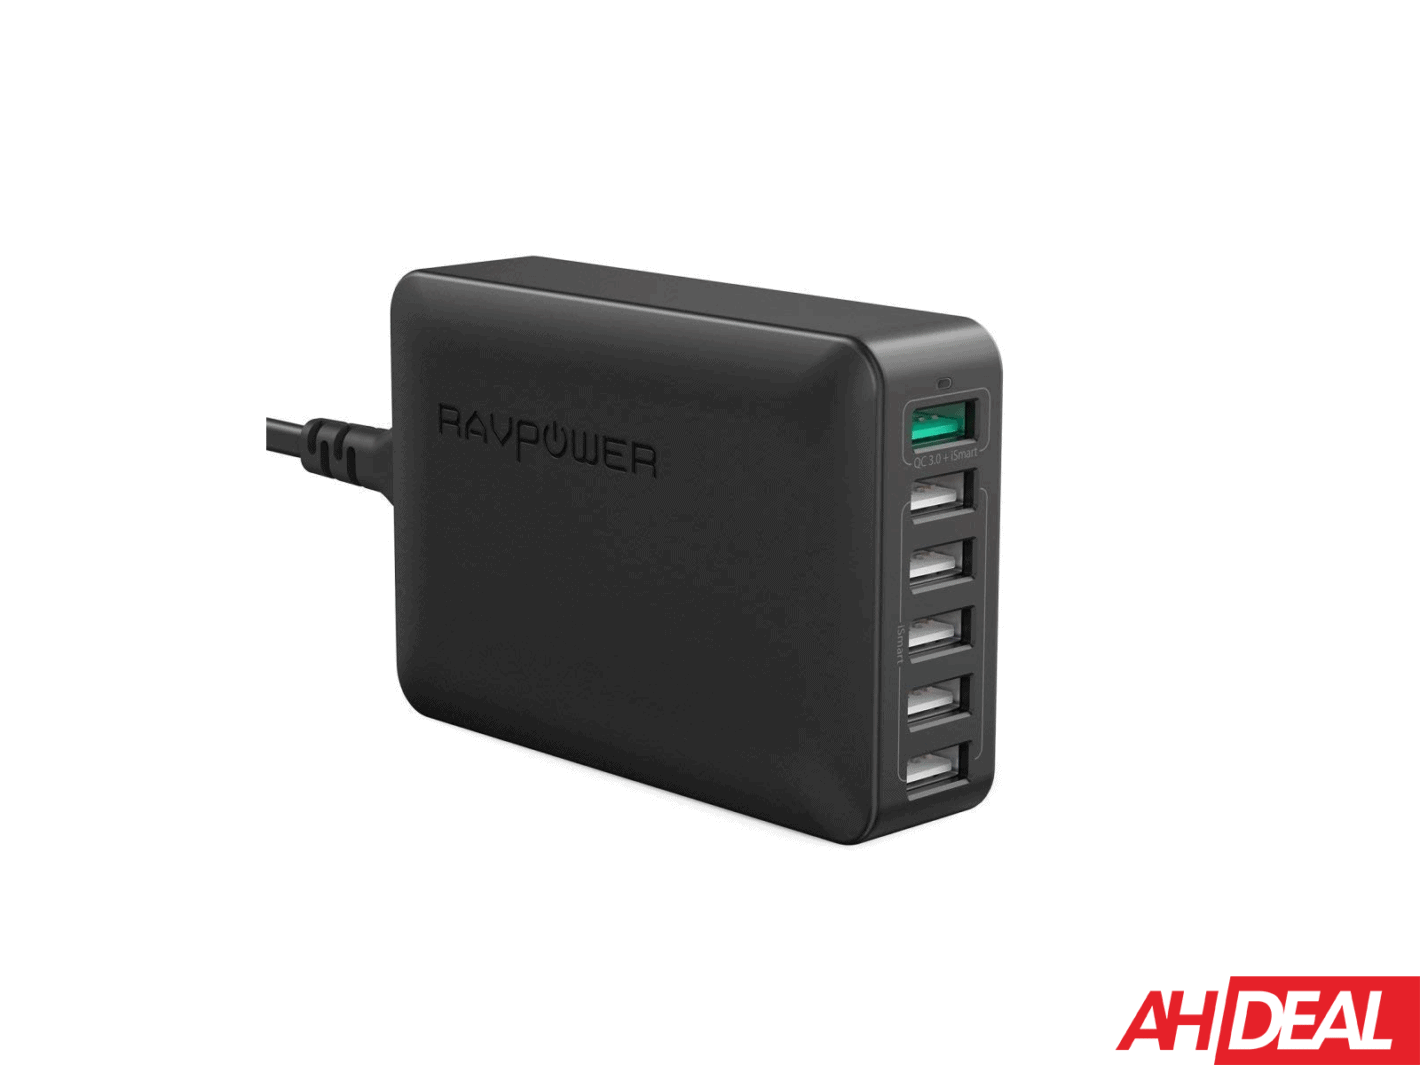 RAVPower 60W 6 Port Charging Station Deal NEW AH